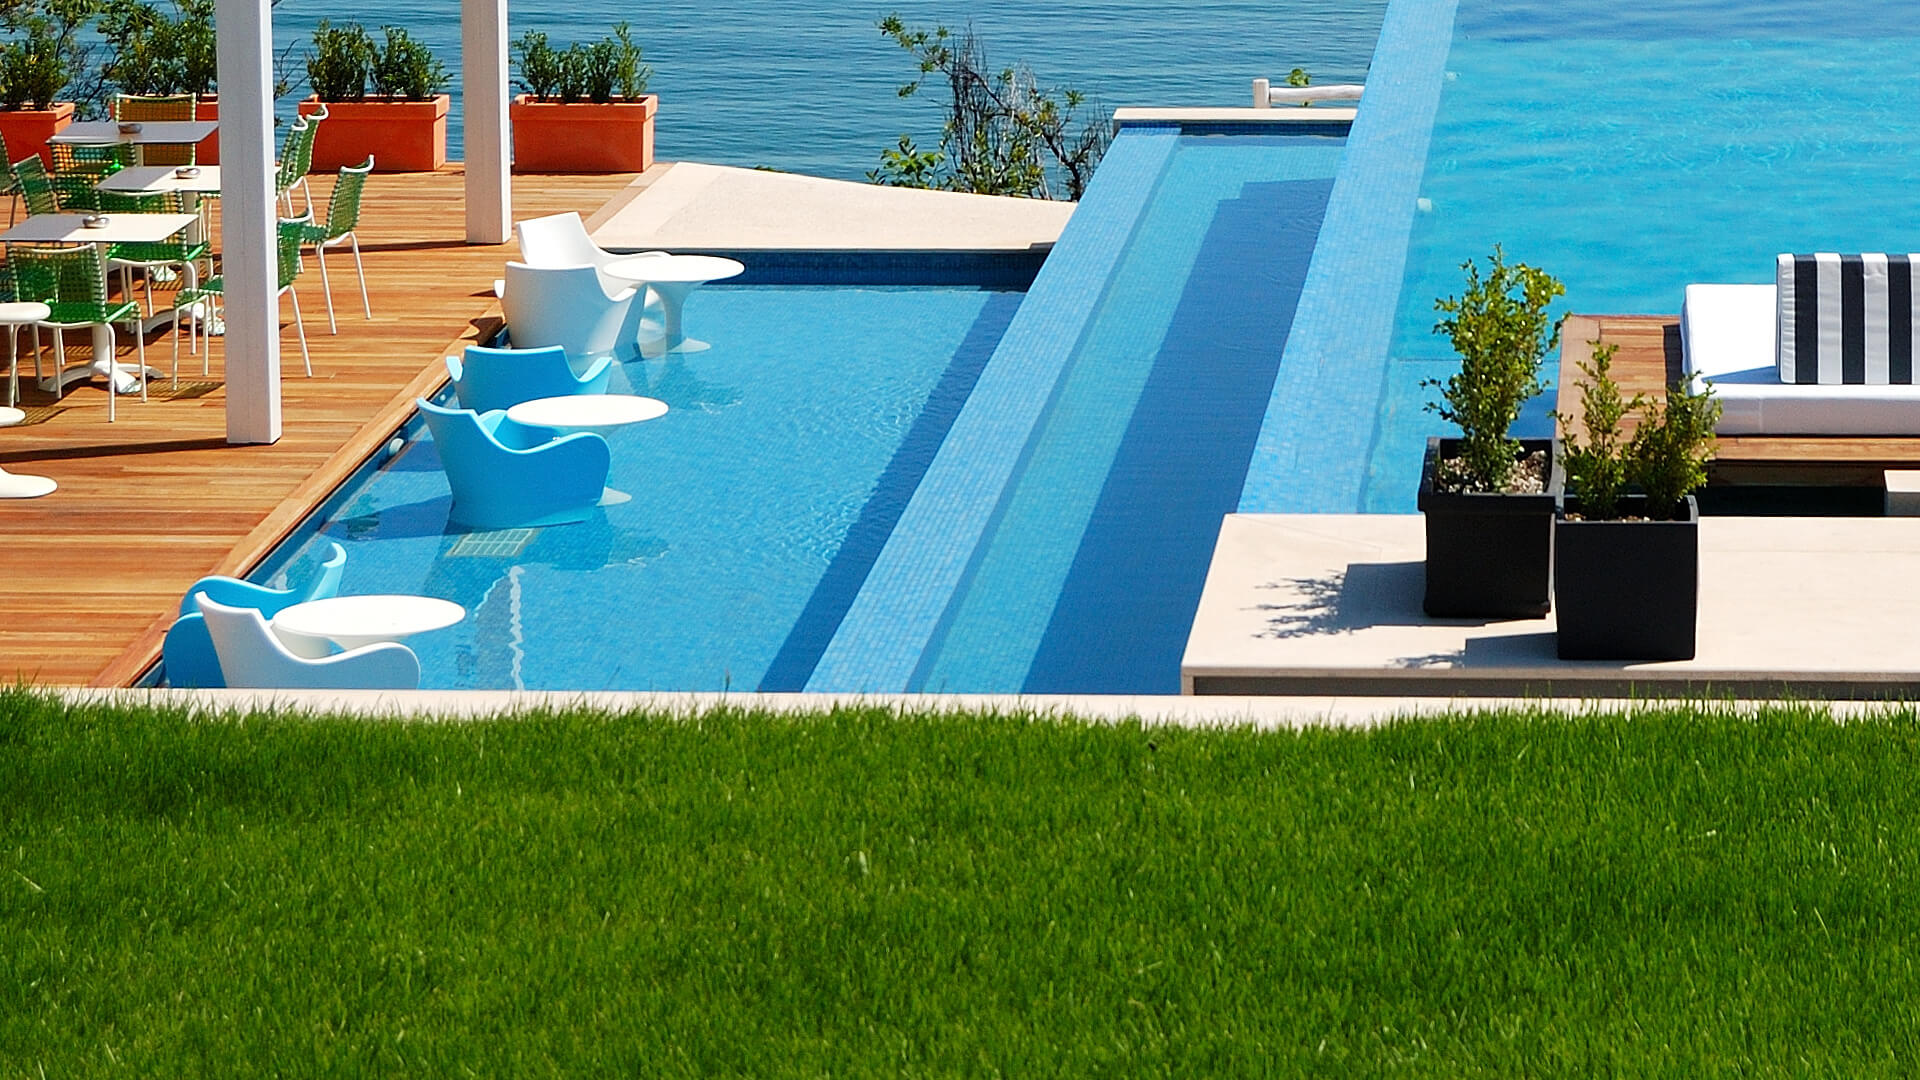 Infinity Edge Custom Swimming Pool Design Idea - Clarity Pool Service of Las Vegas, Nevada